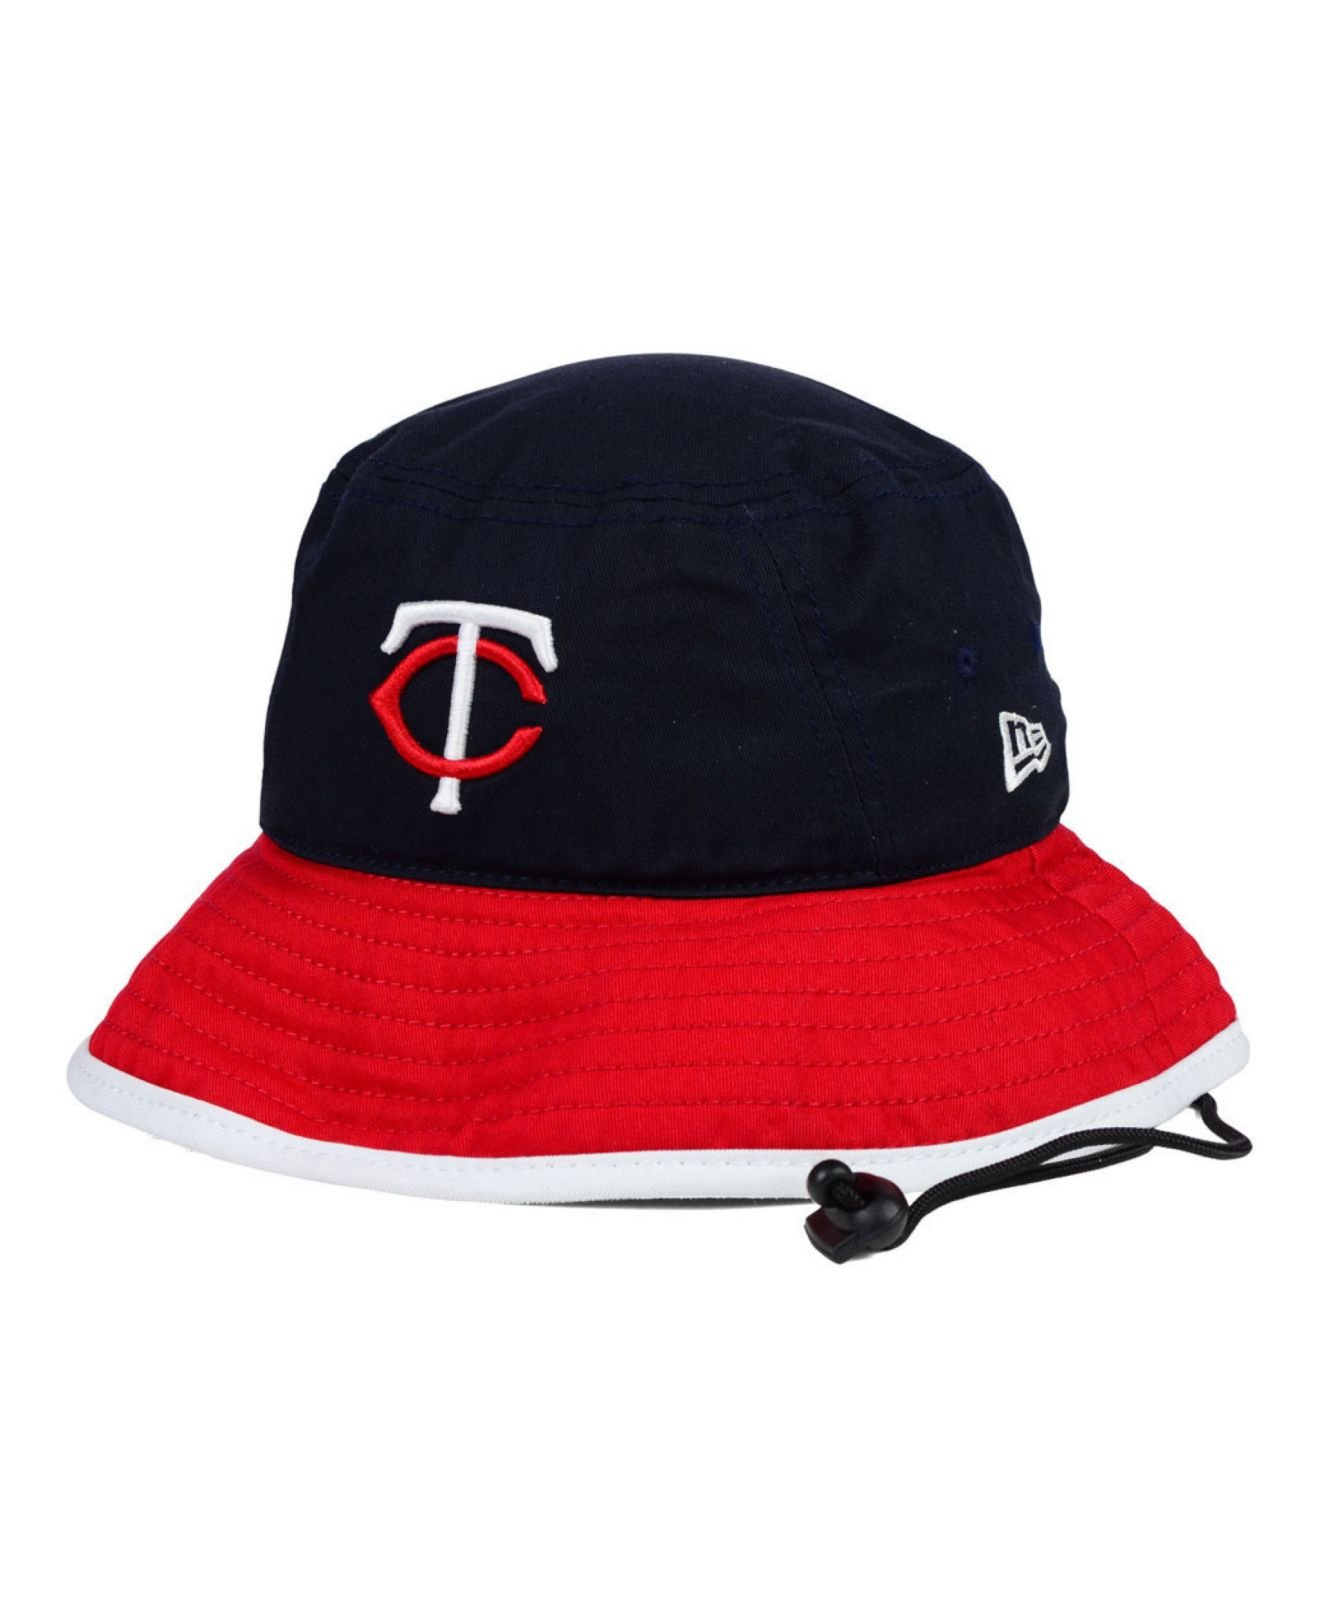 5f81630bbbfb0 Lyst - KTZ Minnesota Twins Triple Color Tipped Bucket Hat in Blue ...